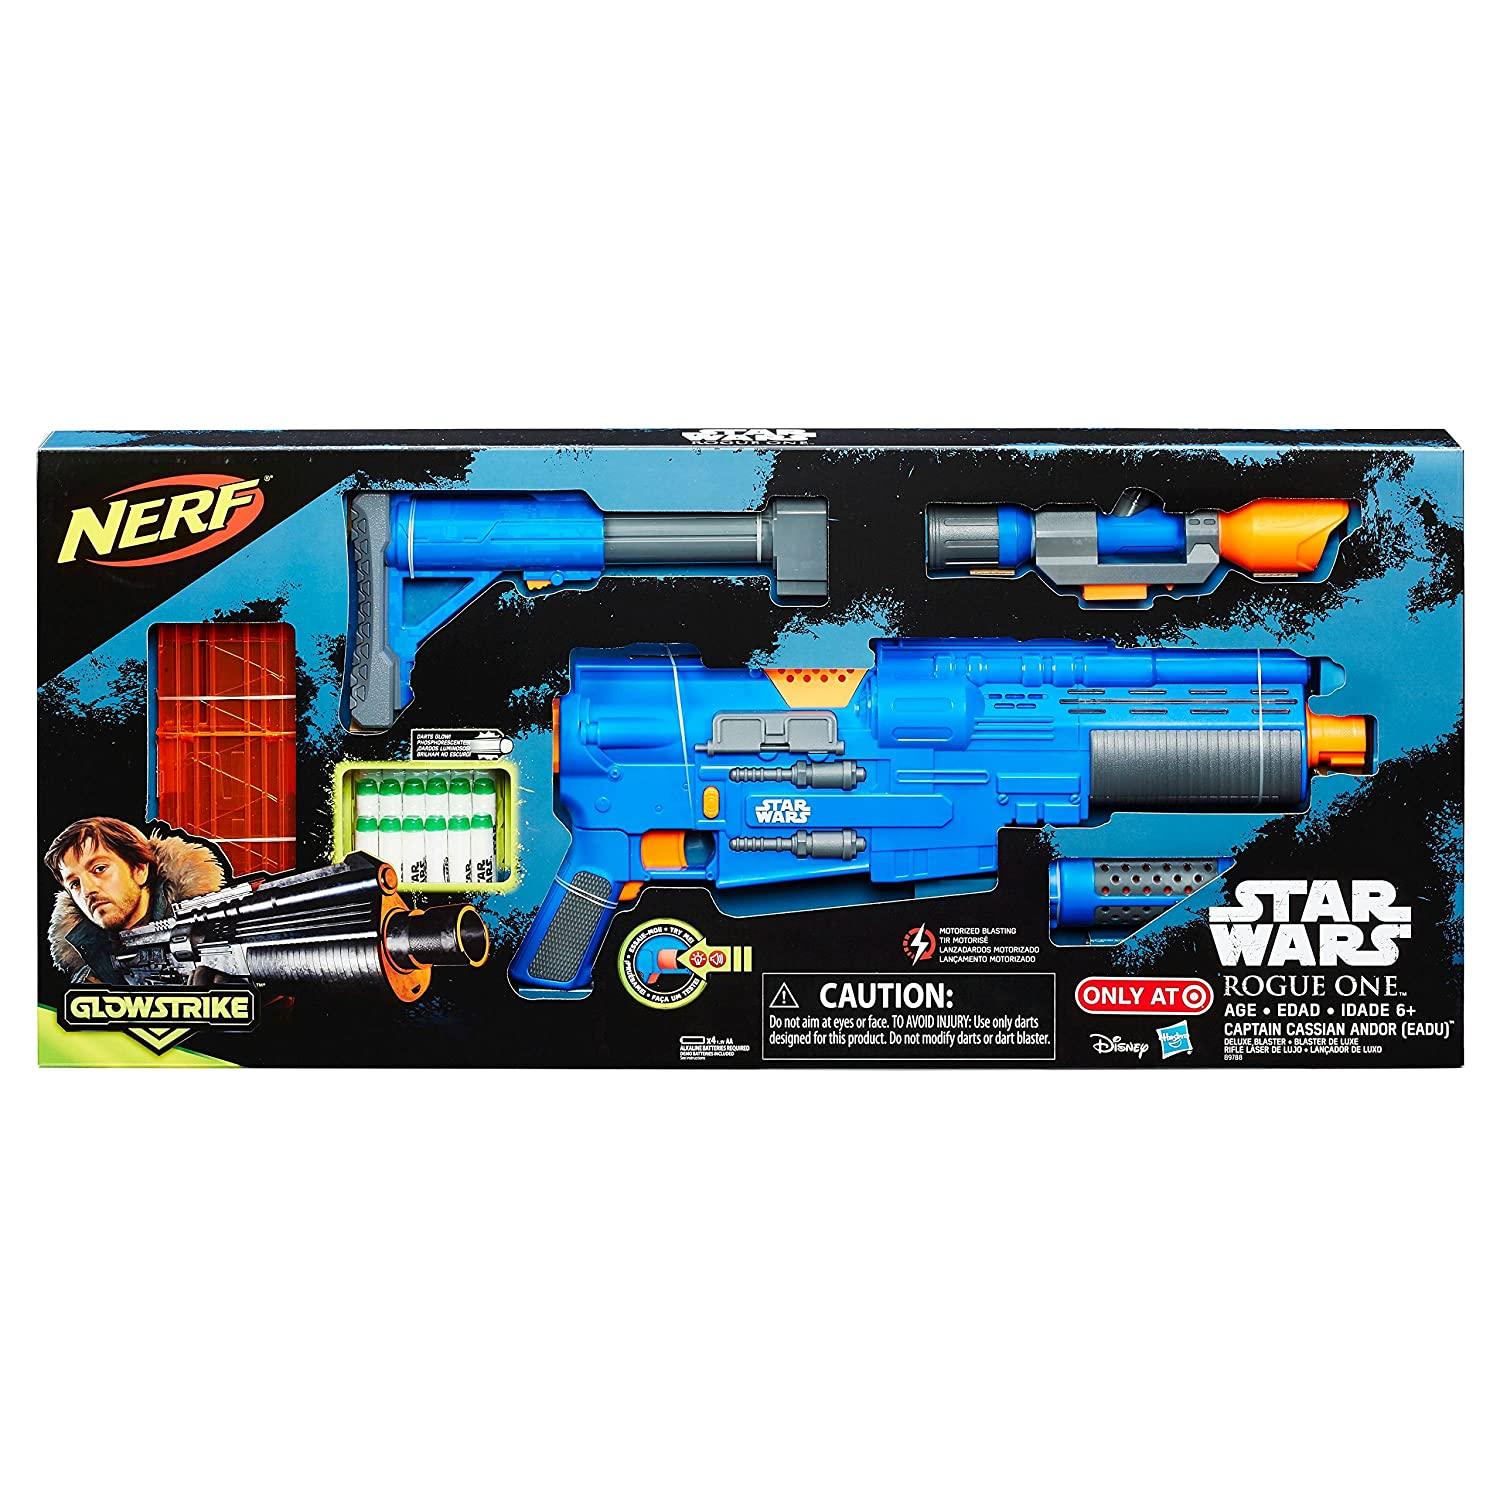 Amazon Star Wars Rogue e NERF Captain Cassian Andor Deluxe Blaster Exclusive Roleplay Toy Toys & Games